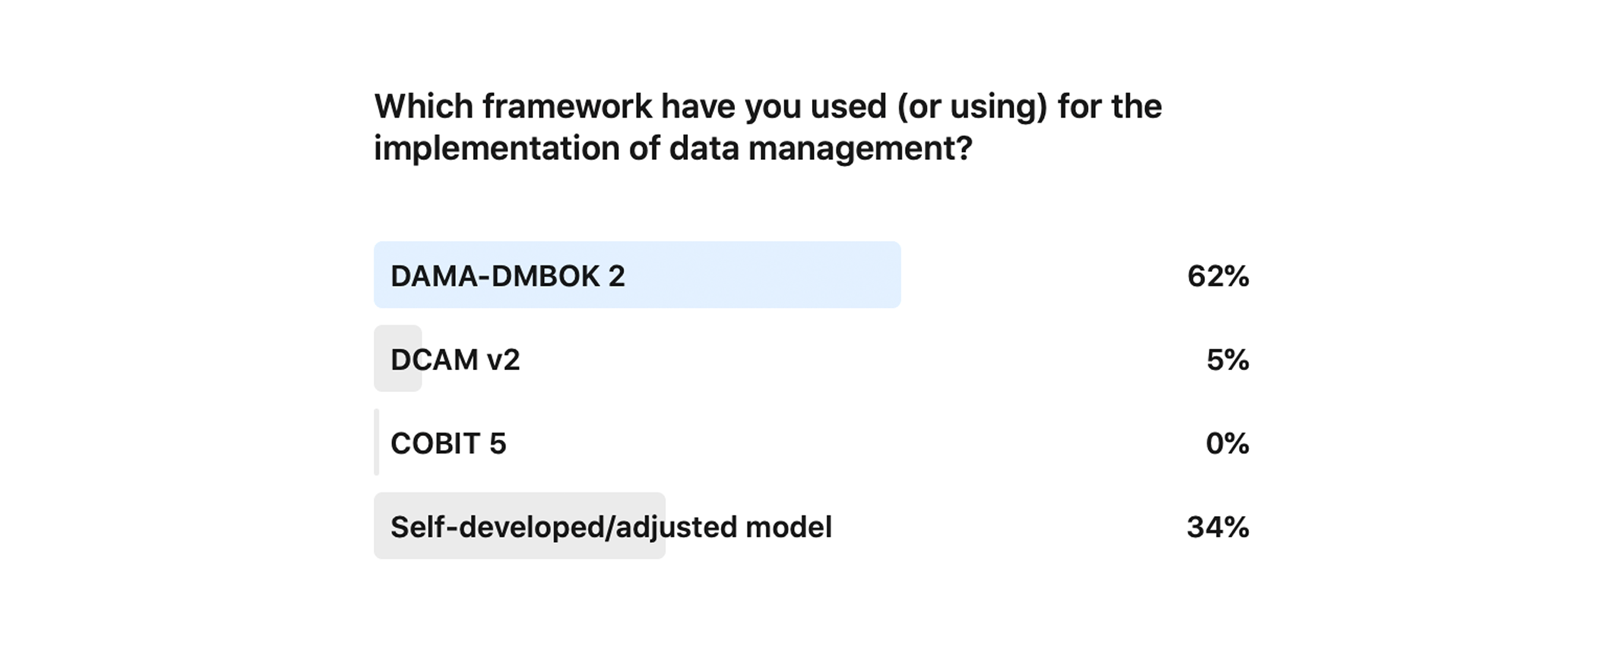 Framework to implement data management